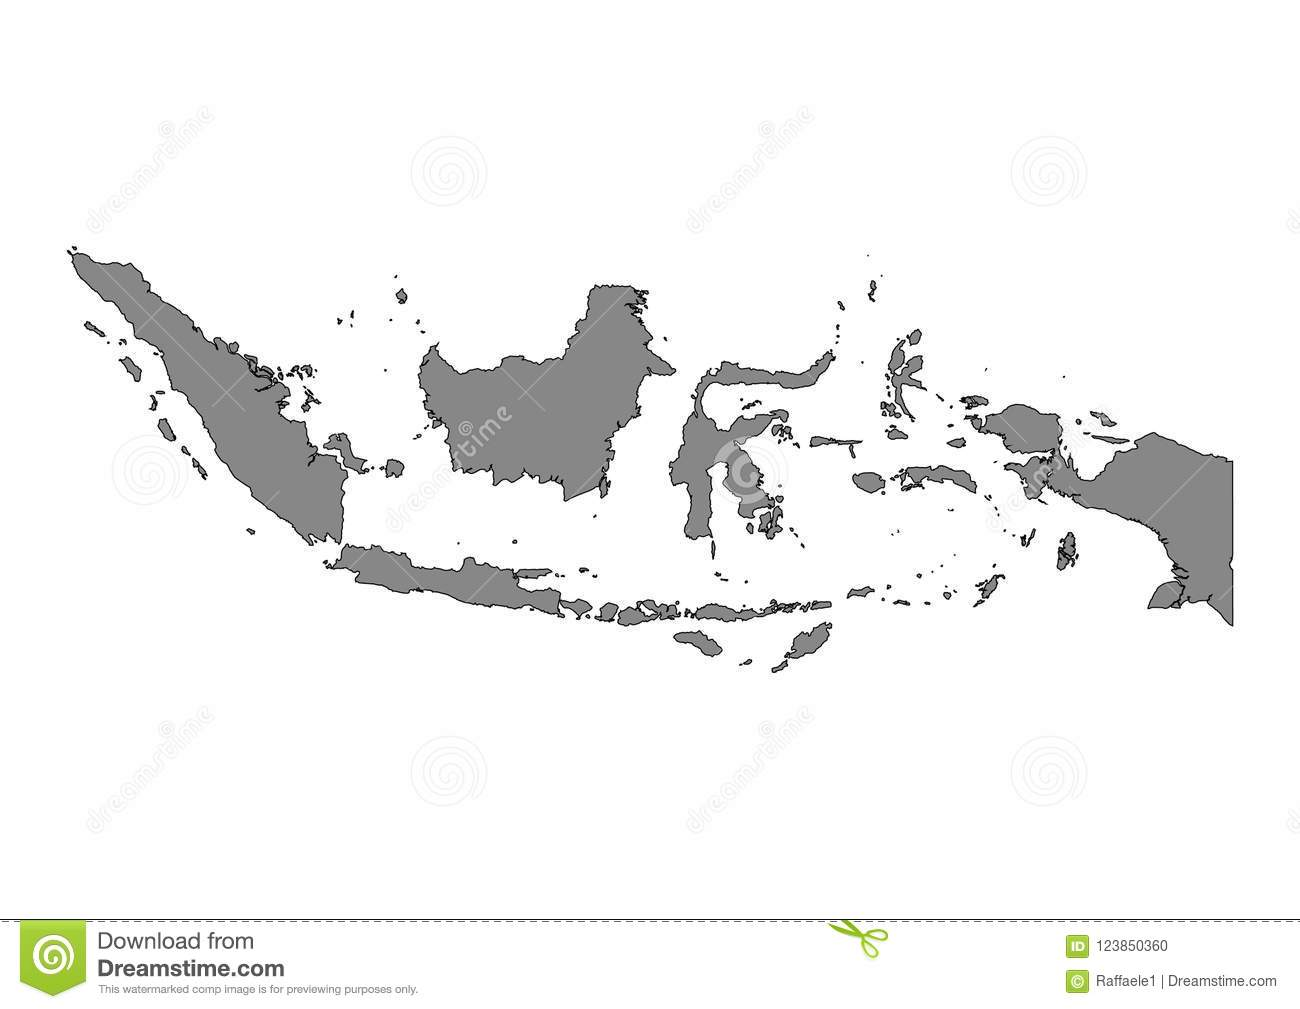 Indonesia state map vector silhouette stock vector illustration of download indonesia state map vector silhouette stock vector illustration of black world 123850360 publicscrutiny Choice Image